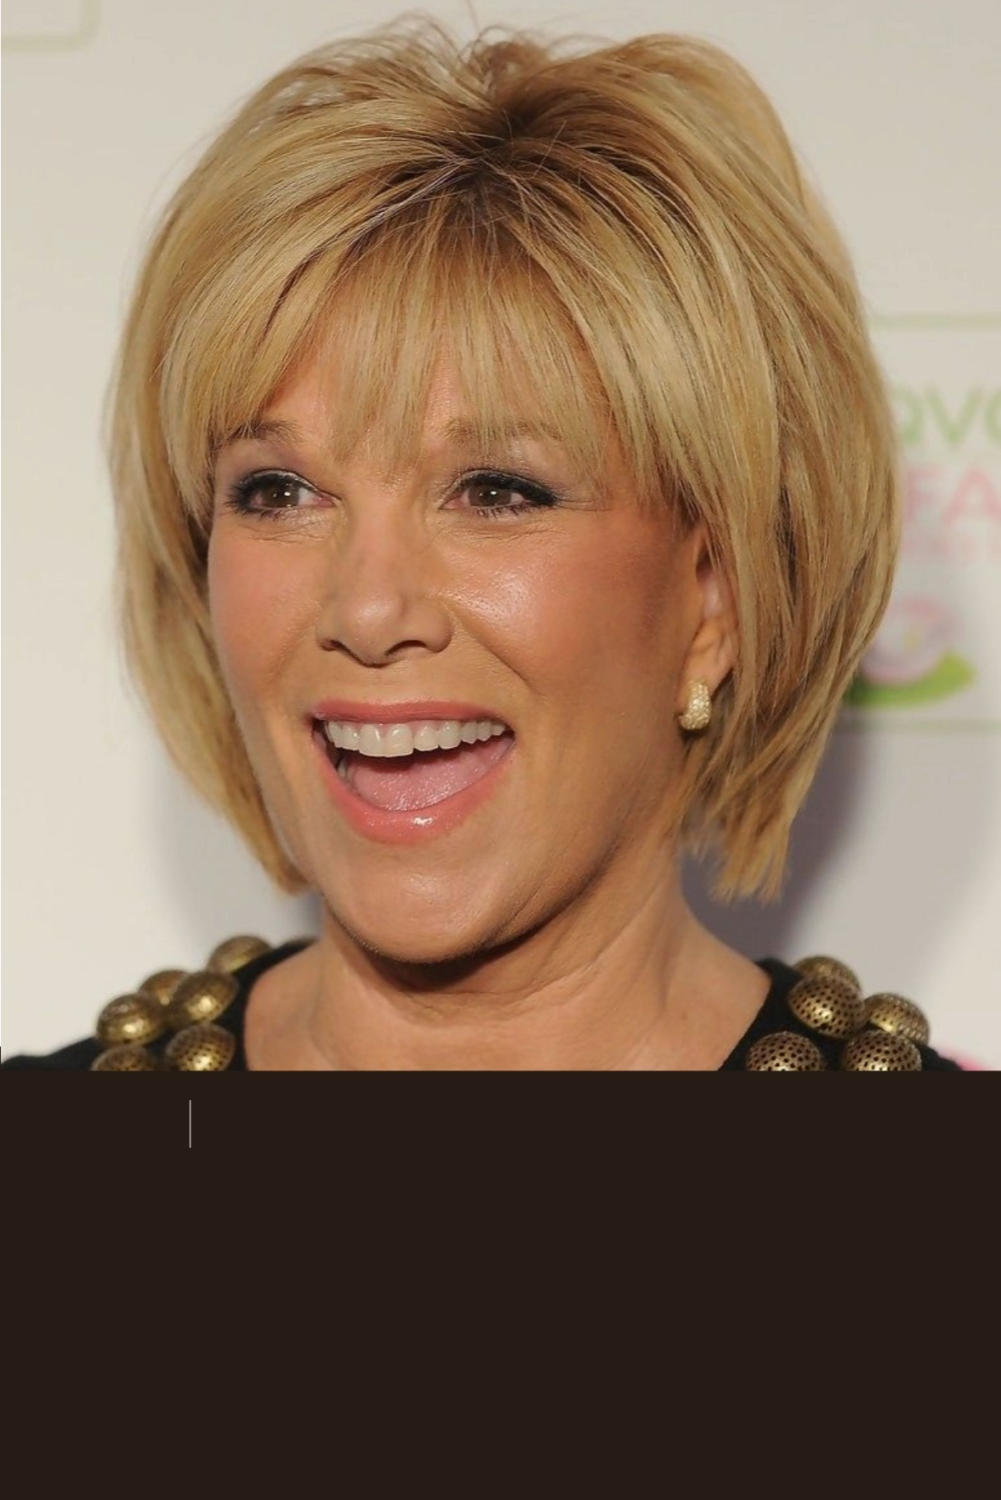 Top 10 Youthful Older Women Hairstyles Over 60